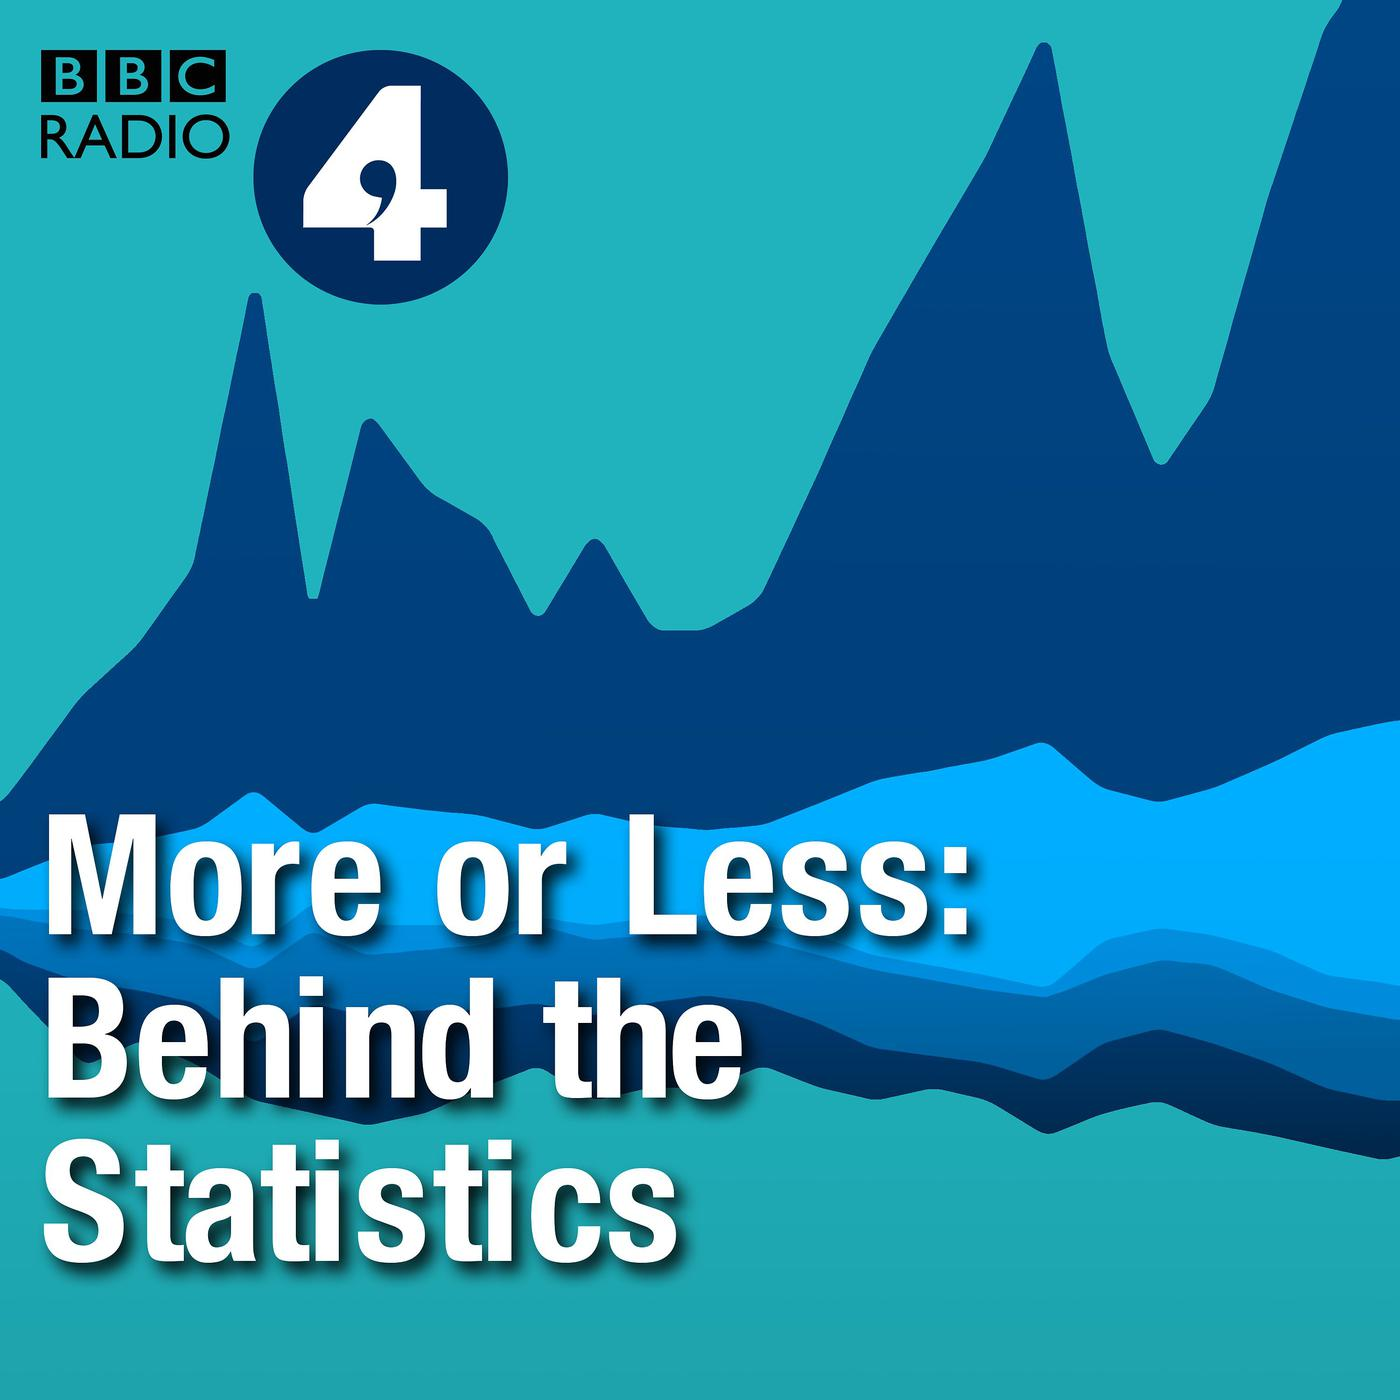 more-or-less-behind-the-stats-bbc-radio-4-eh67Mcb_TE1.1400x1400.jpg